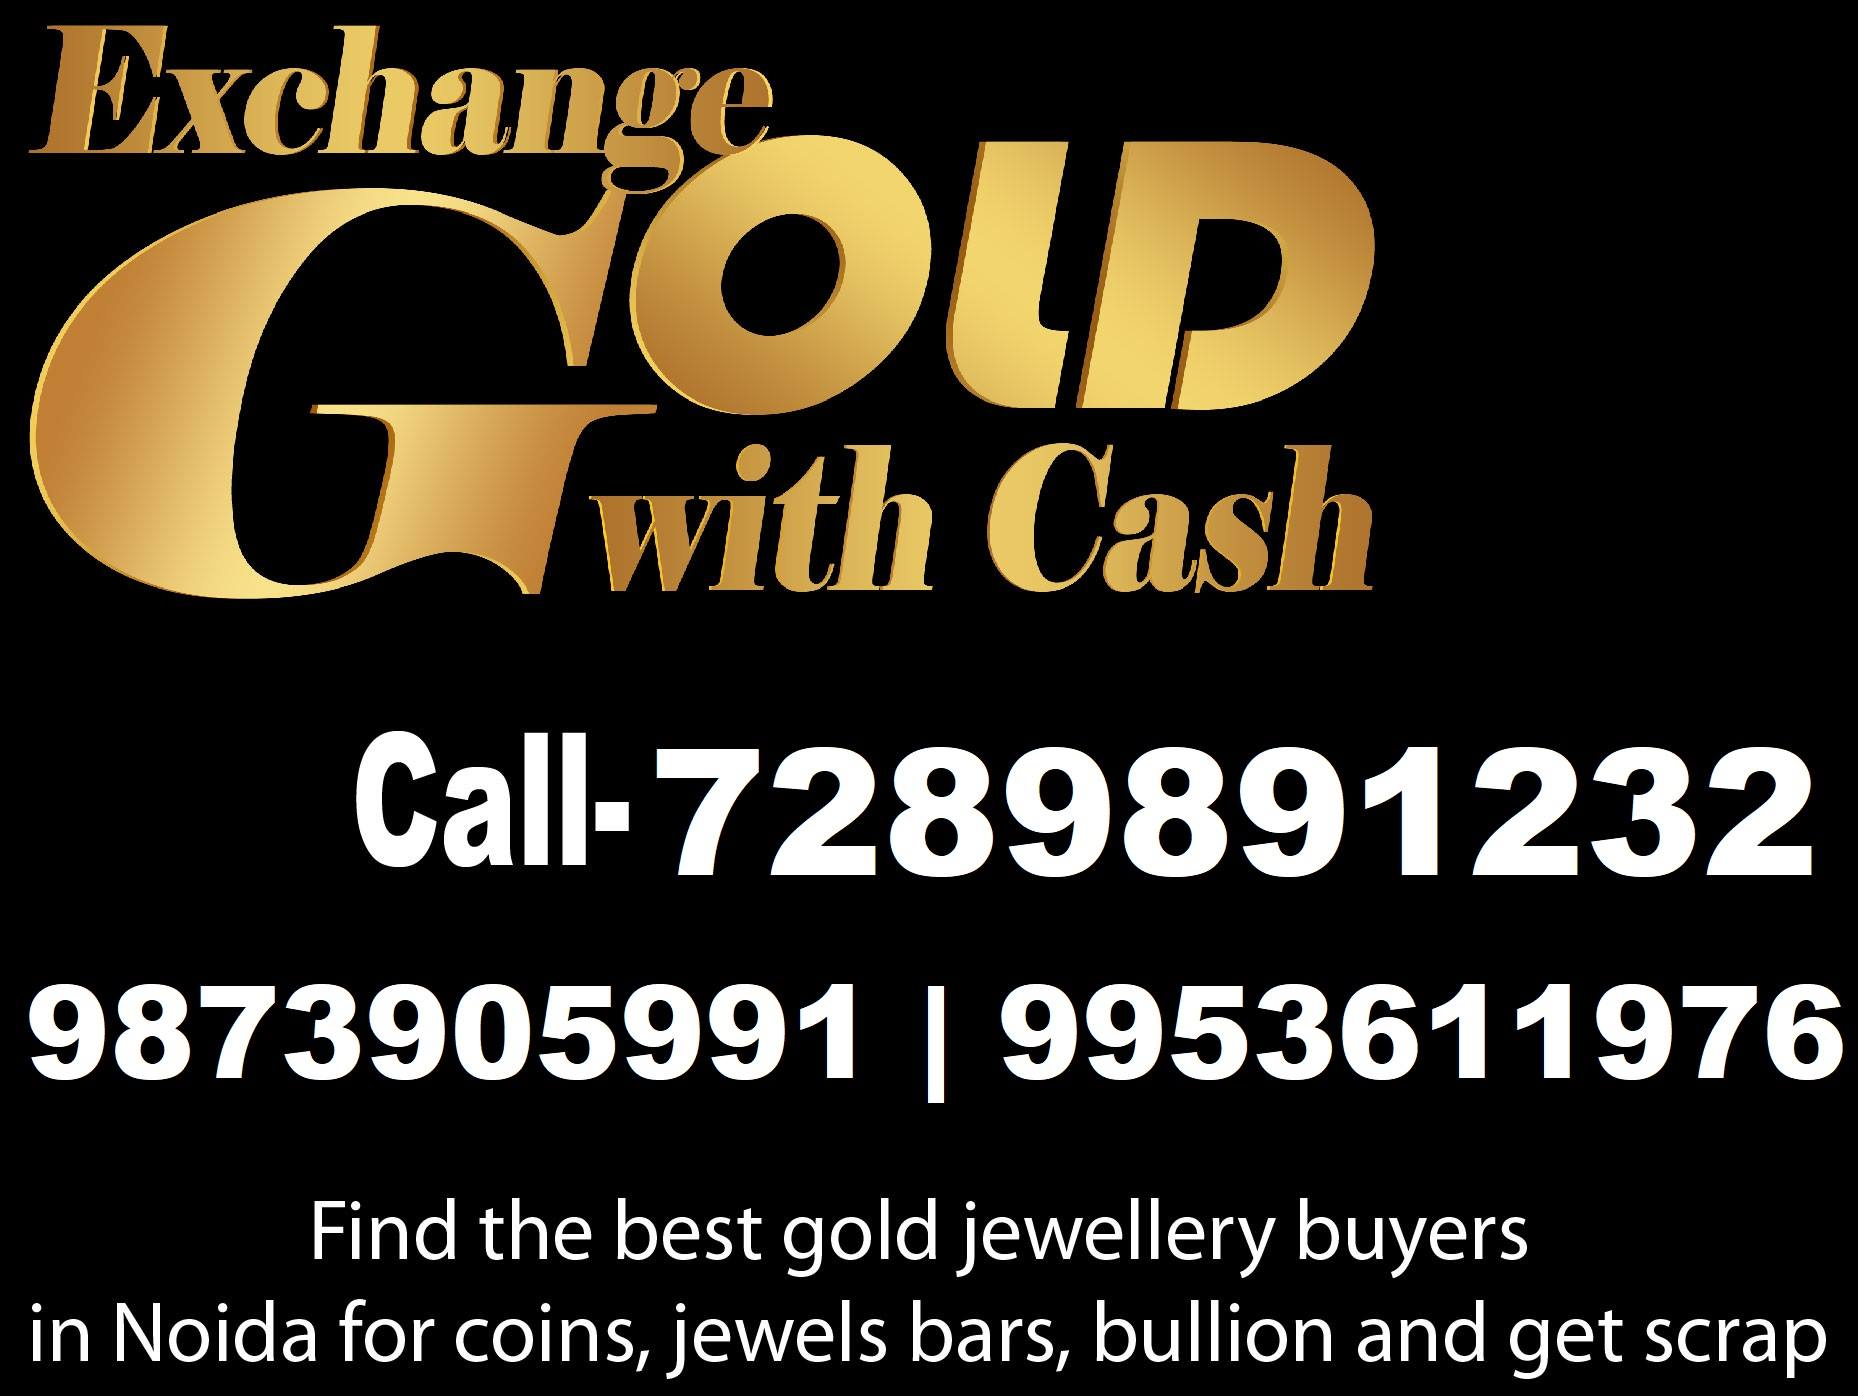 Gold jewellery for cash in Vikas Nagar